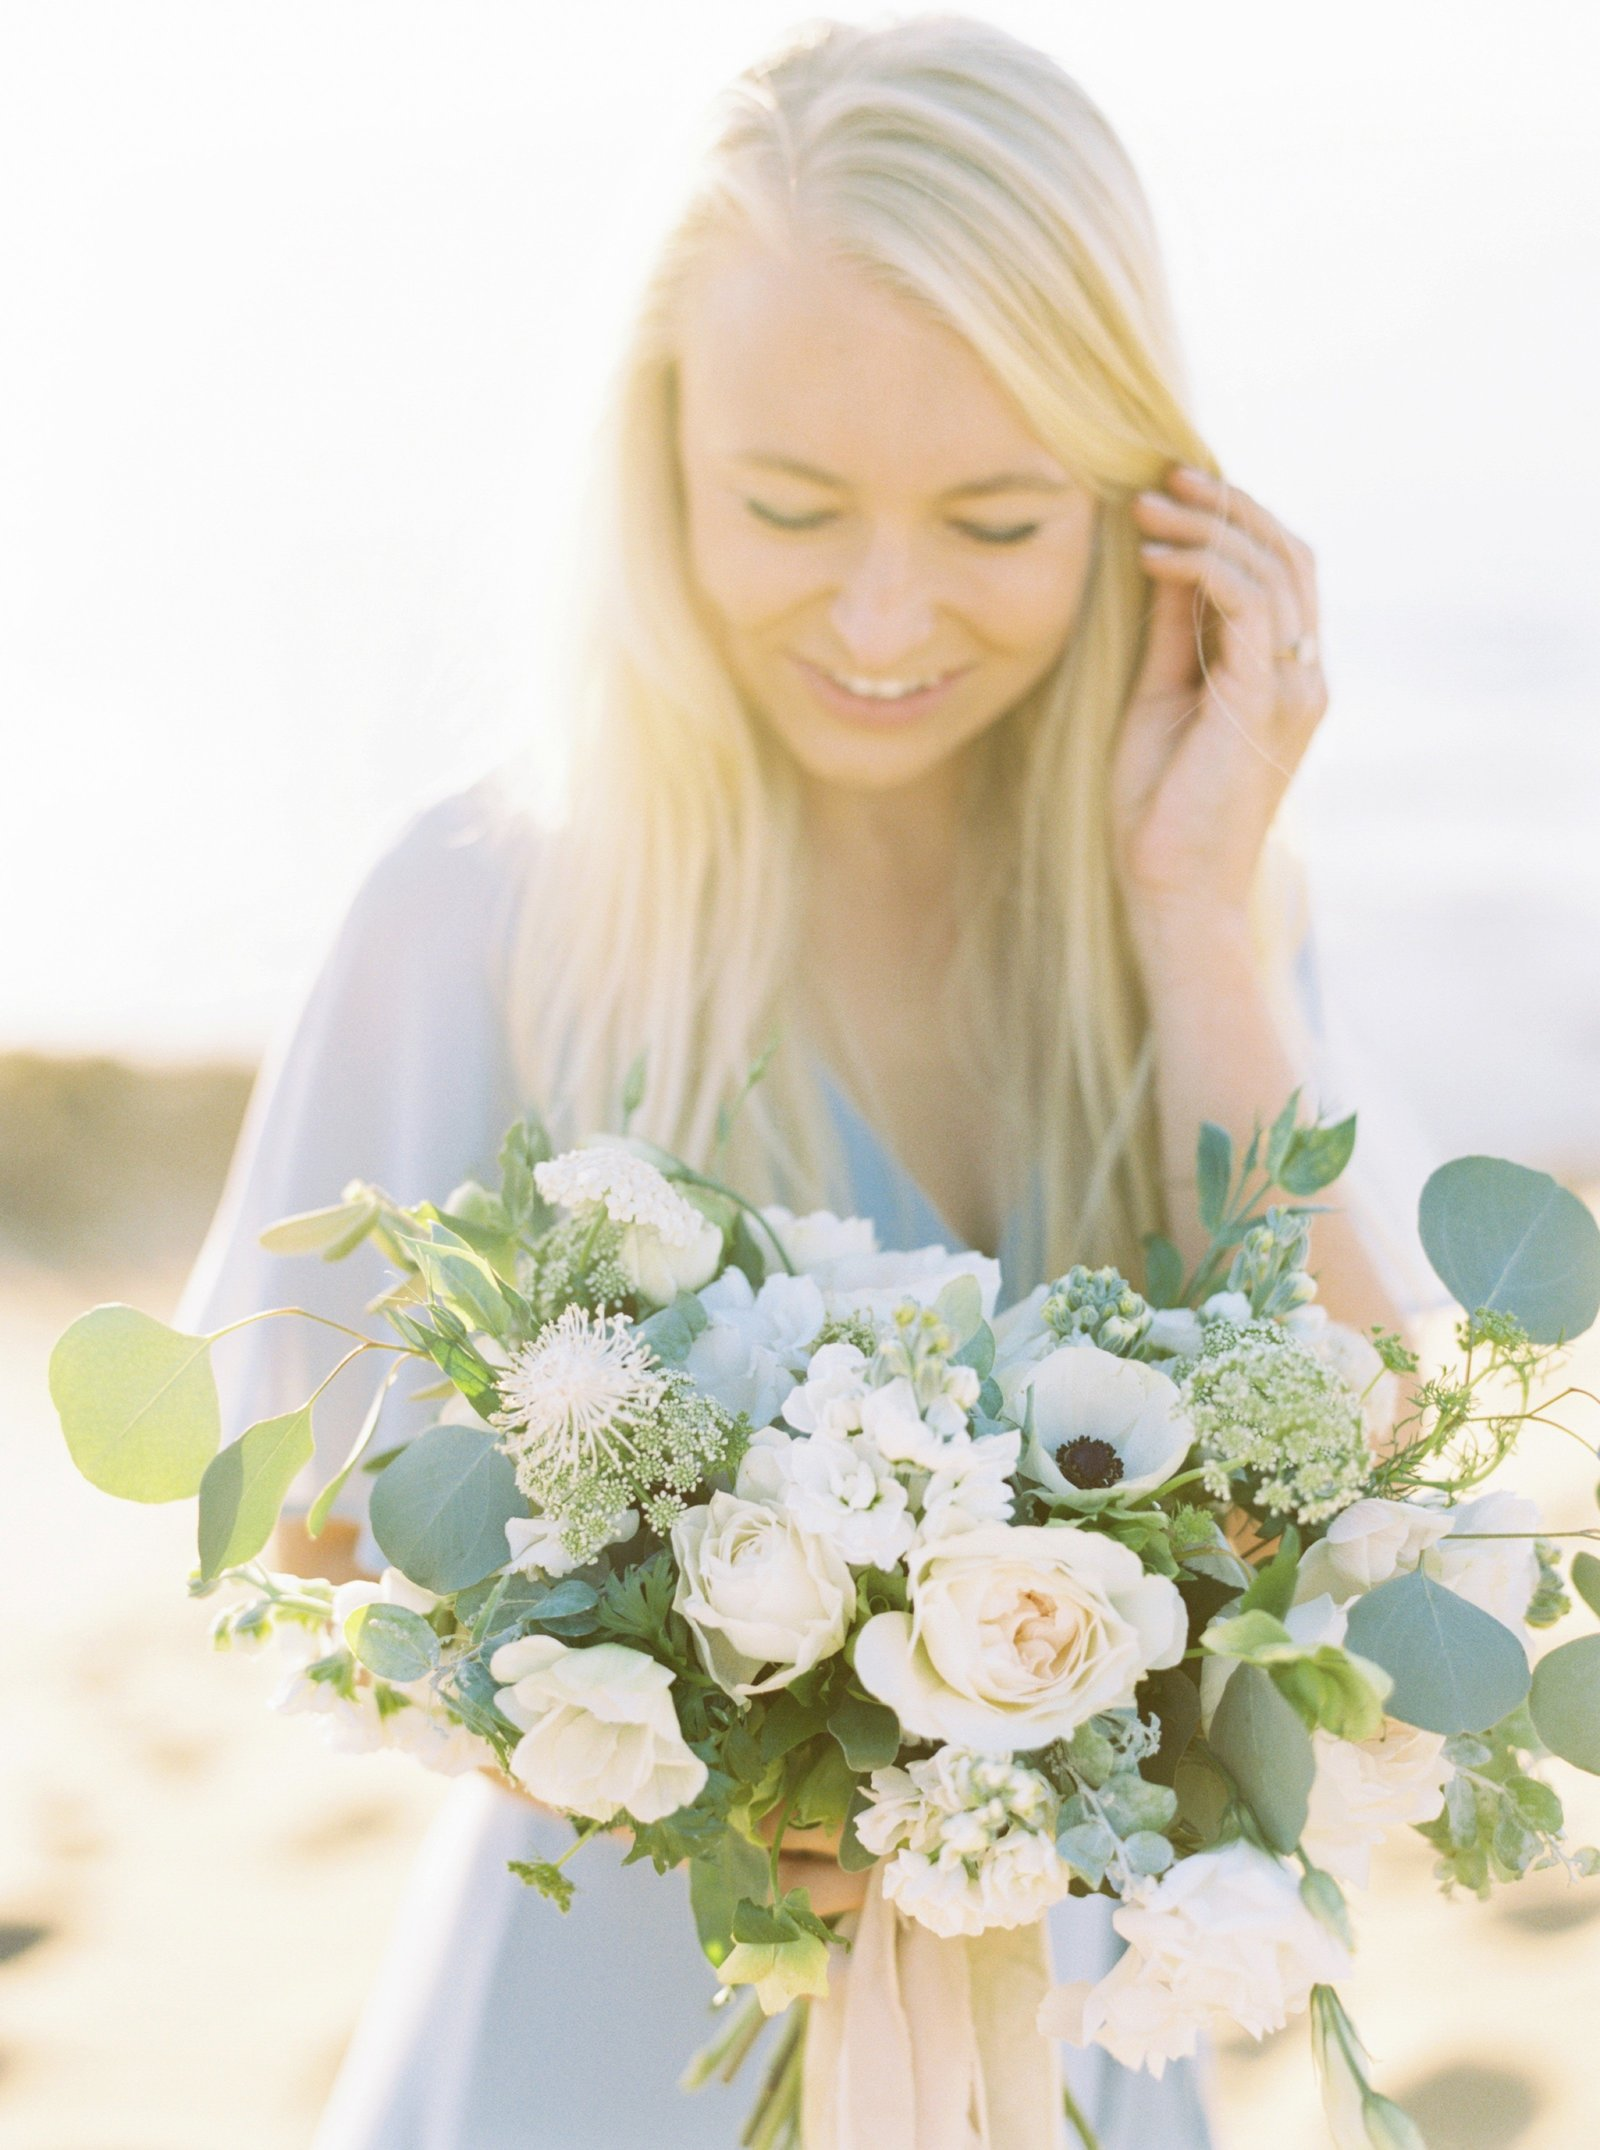 nicoleclareyphotography_natalie+matt_central coast_engagement_0015